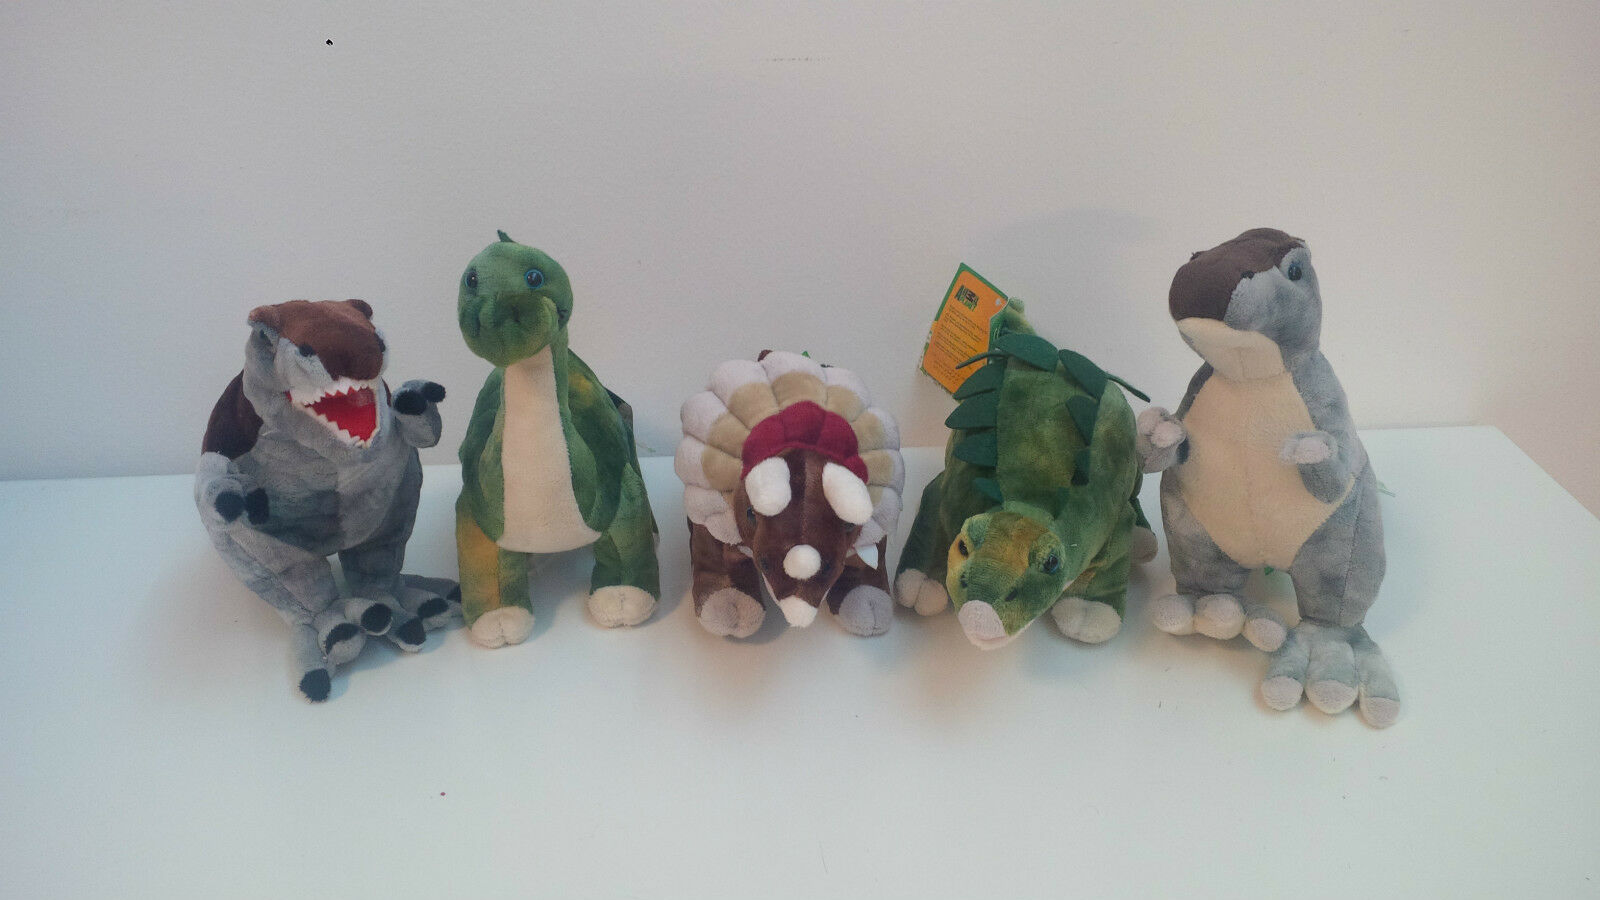 Soft toy Dinosaurs Original Animal Planet 28 cm 5 models T-Rex Triceratops and